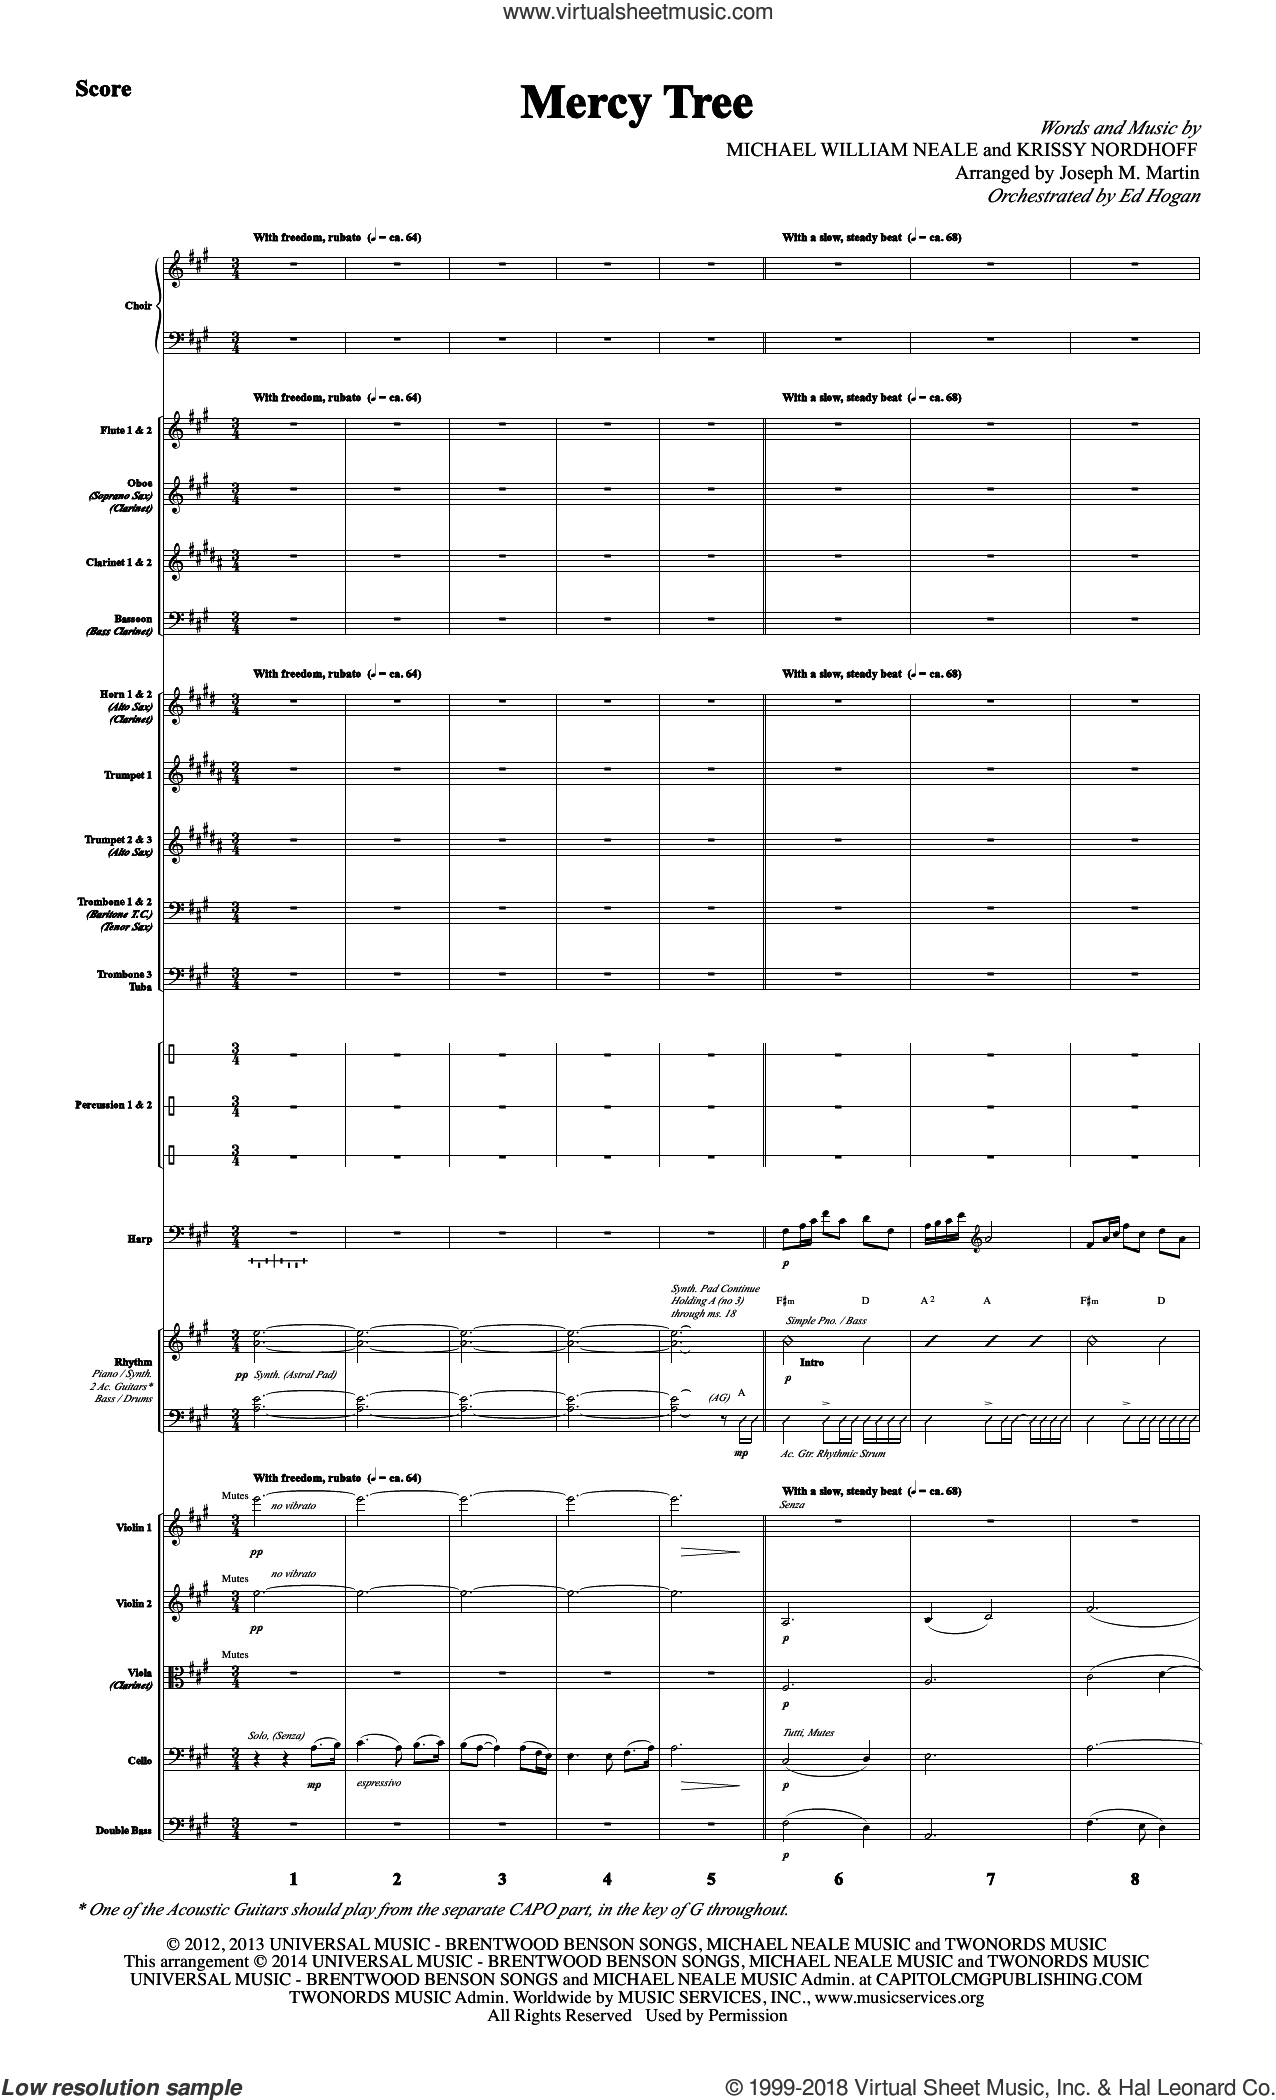 Mercy Tree (COMPLETE) sheet music for orchestra/band by Joseph M. Martin, Krissy Nordhoff, Lacey Sturm and Michael William Neale, intermediate skill level